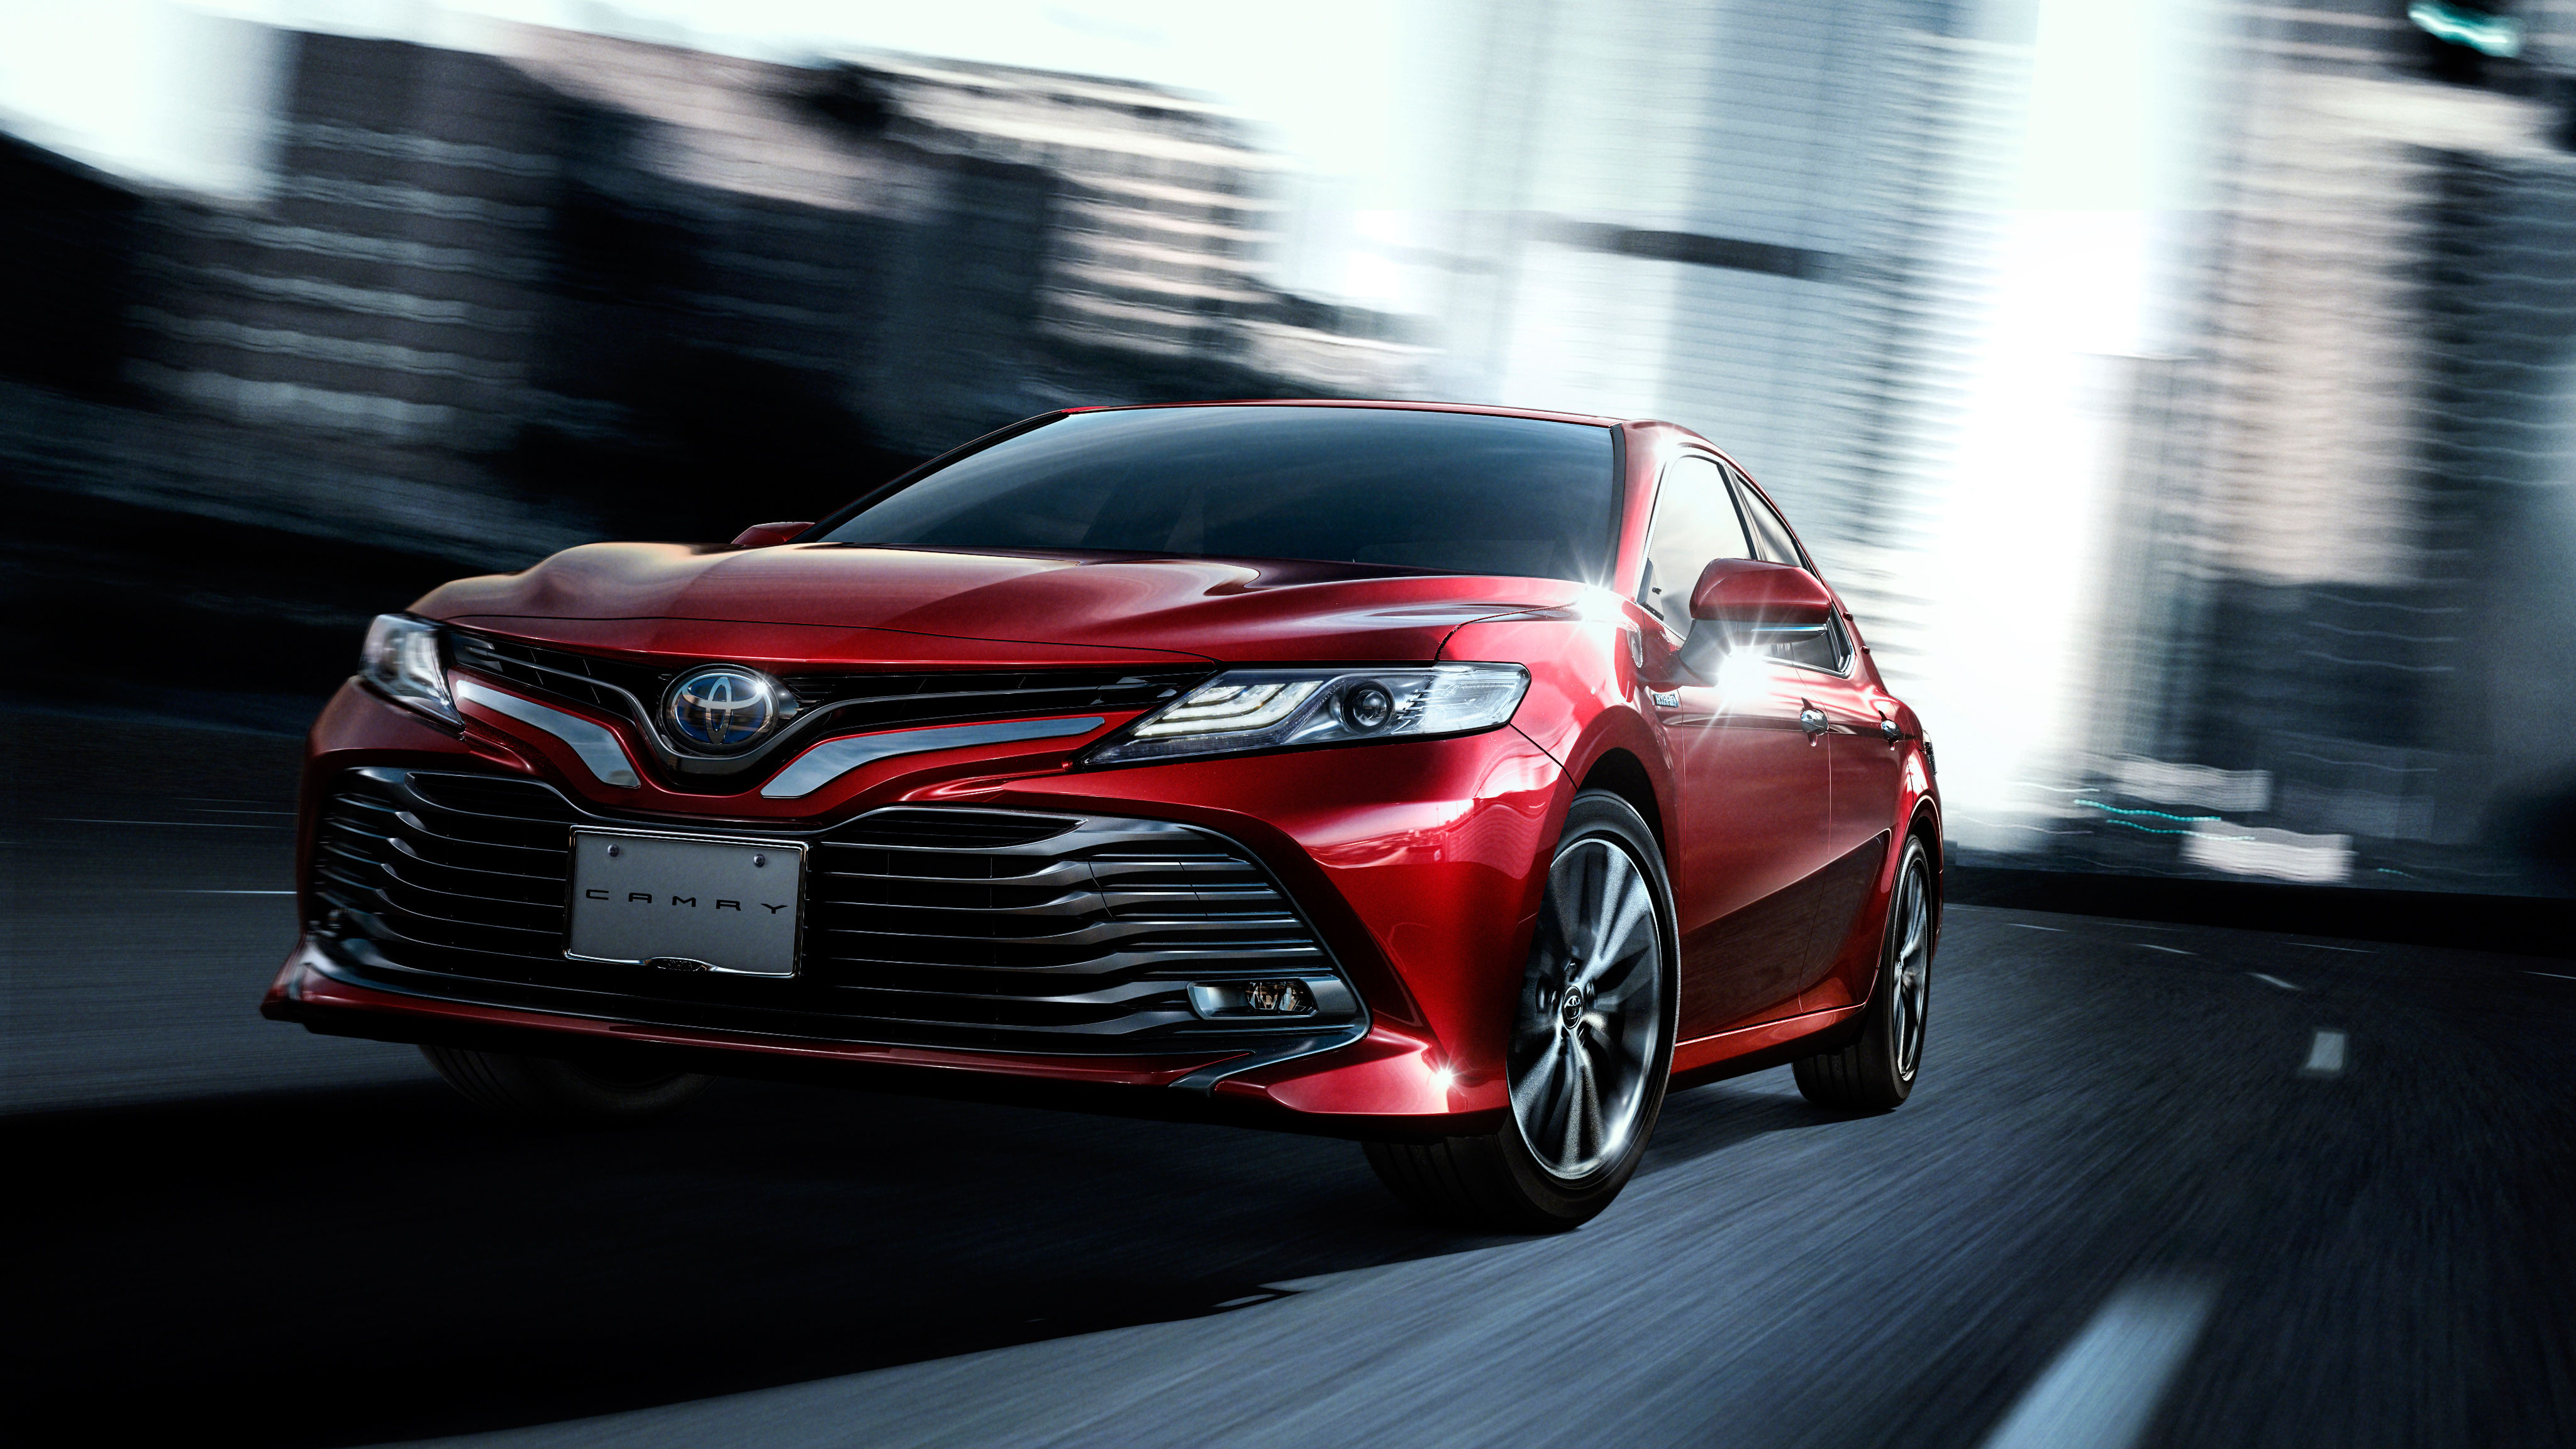 2016 Toyota Camry Xse >> Toyota Camry Hybrid 2018 Wallpaper | HD Car Wallpapers | ID #7935